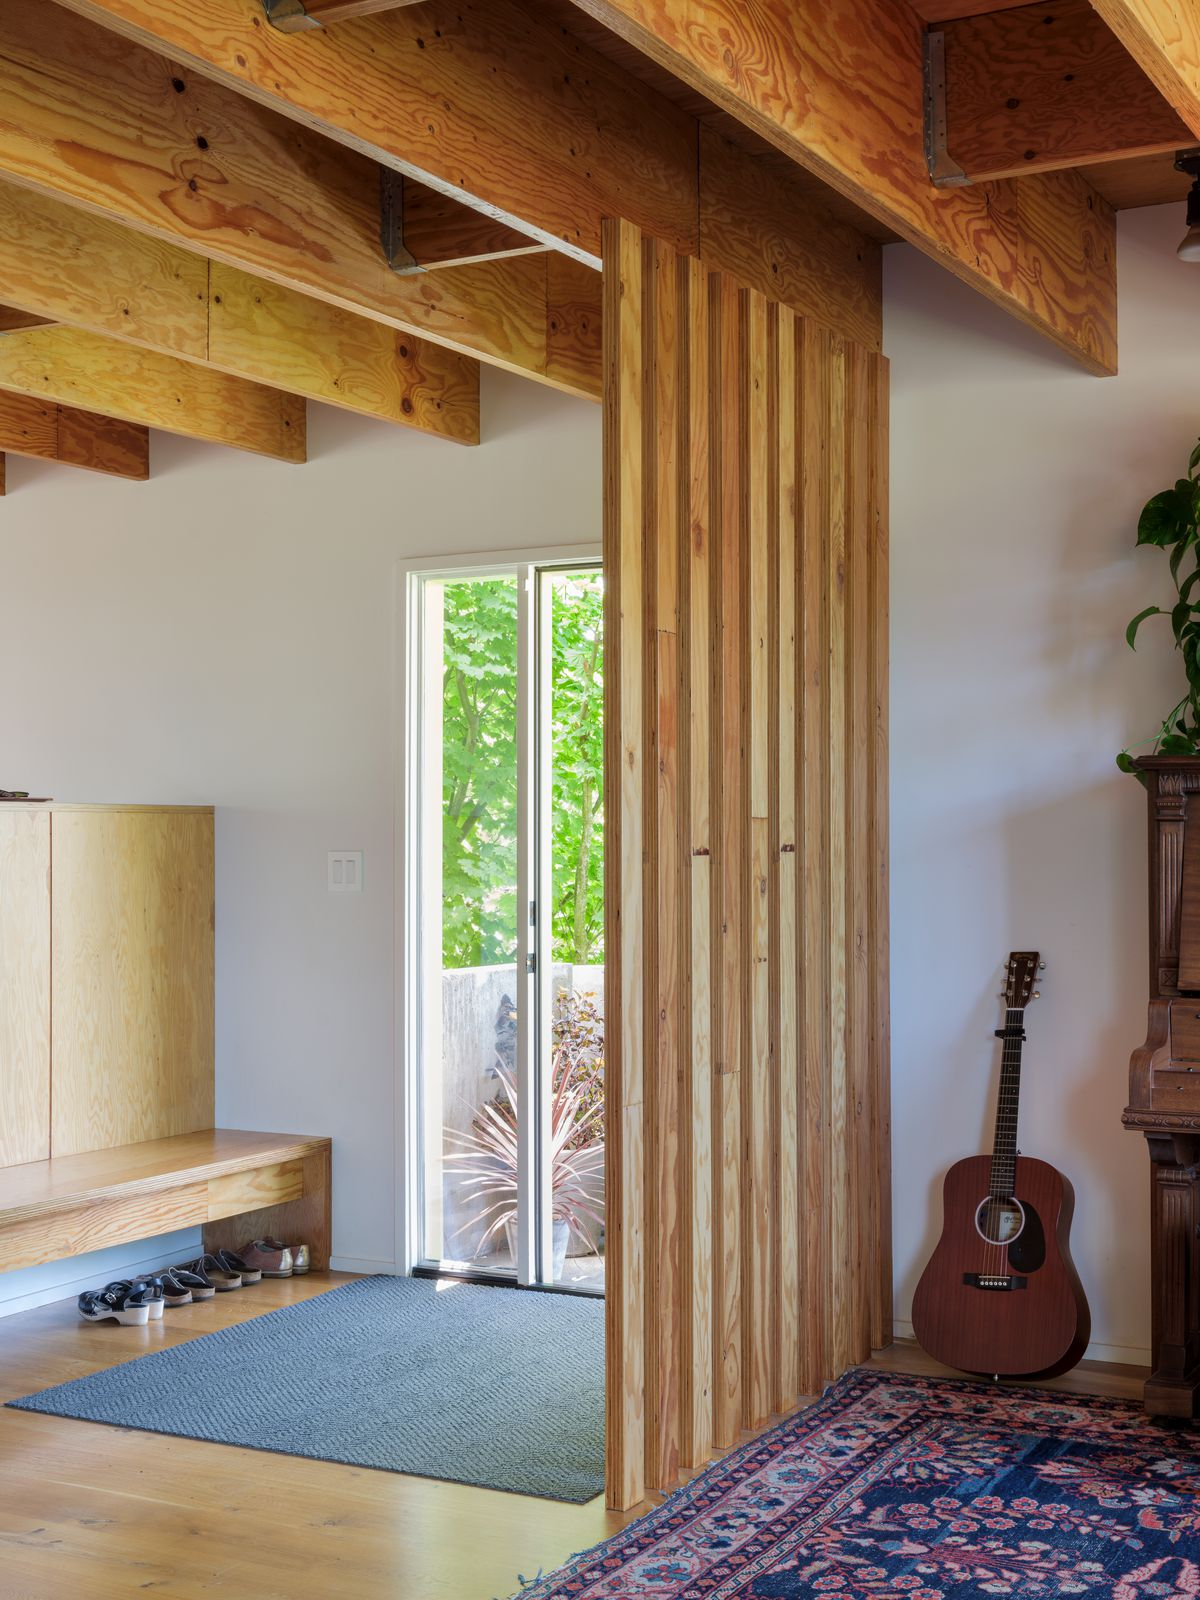 A living area with a patterned area rug, wooden room divider, and bench. There is a guitar leaning against the wall. There are shoes under the bench. There are glass doors.